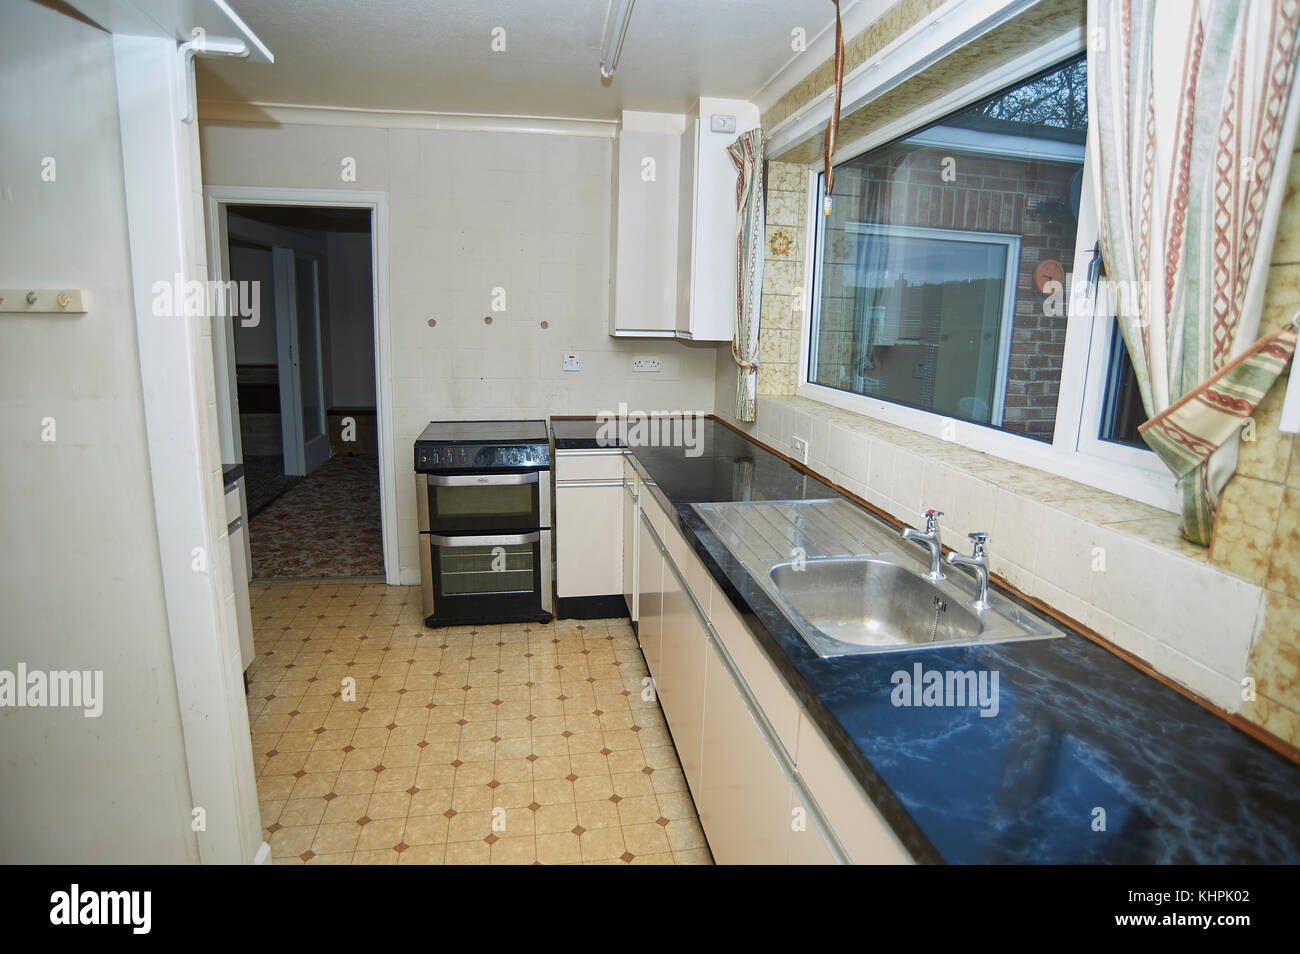 Residential property renovation, renewed fitted kitchen with kitchen units and cooker Stock Photo